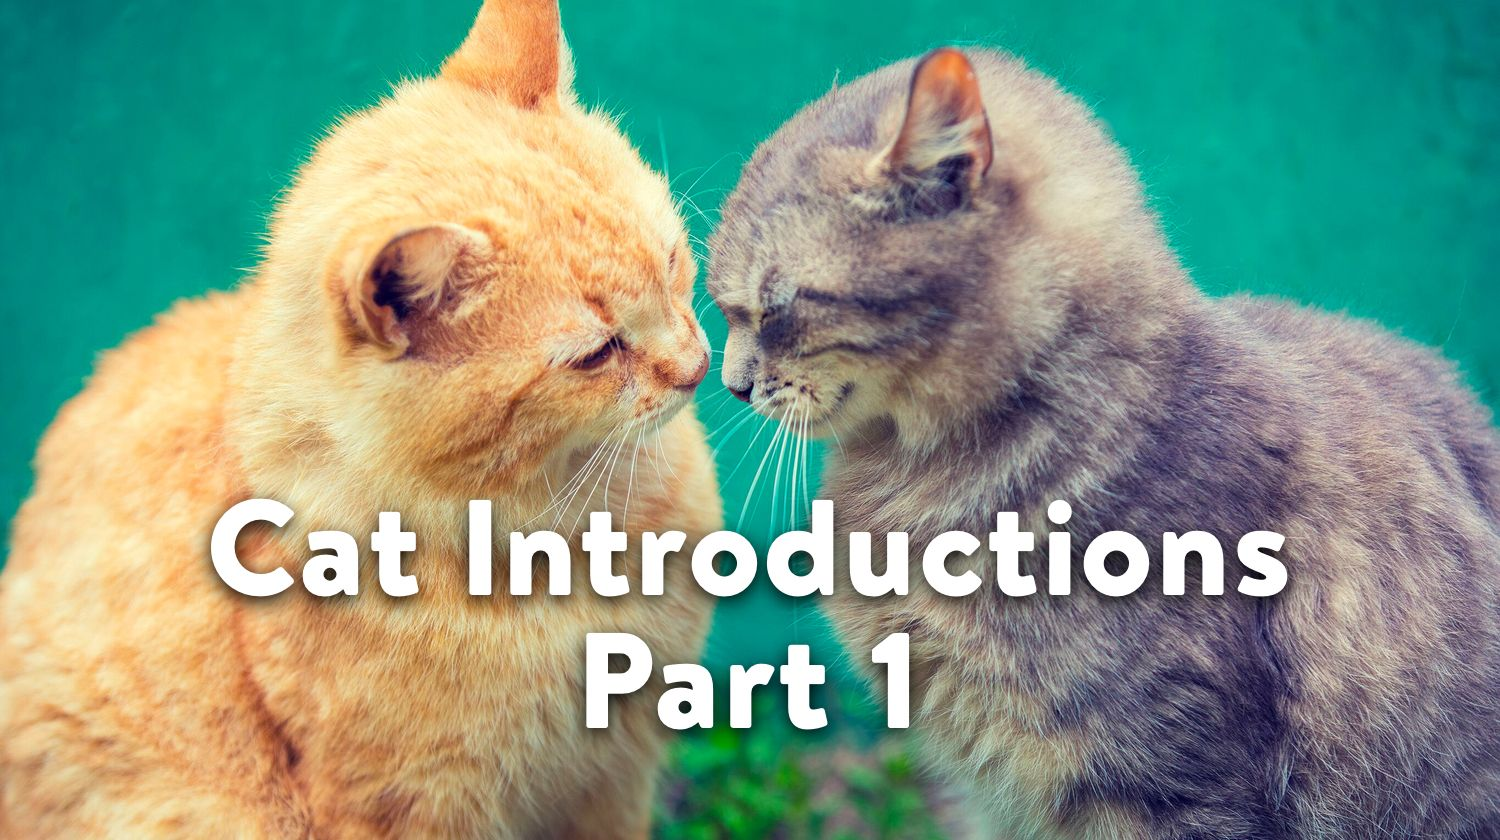 Cat Introductions Part 1 Before The Introduction Jackson Galaxy Cat Communication Cats Sick Pets